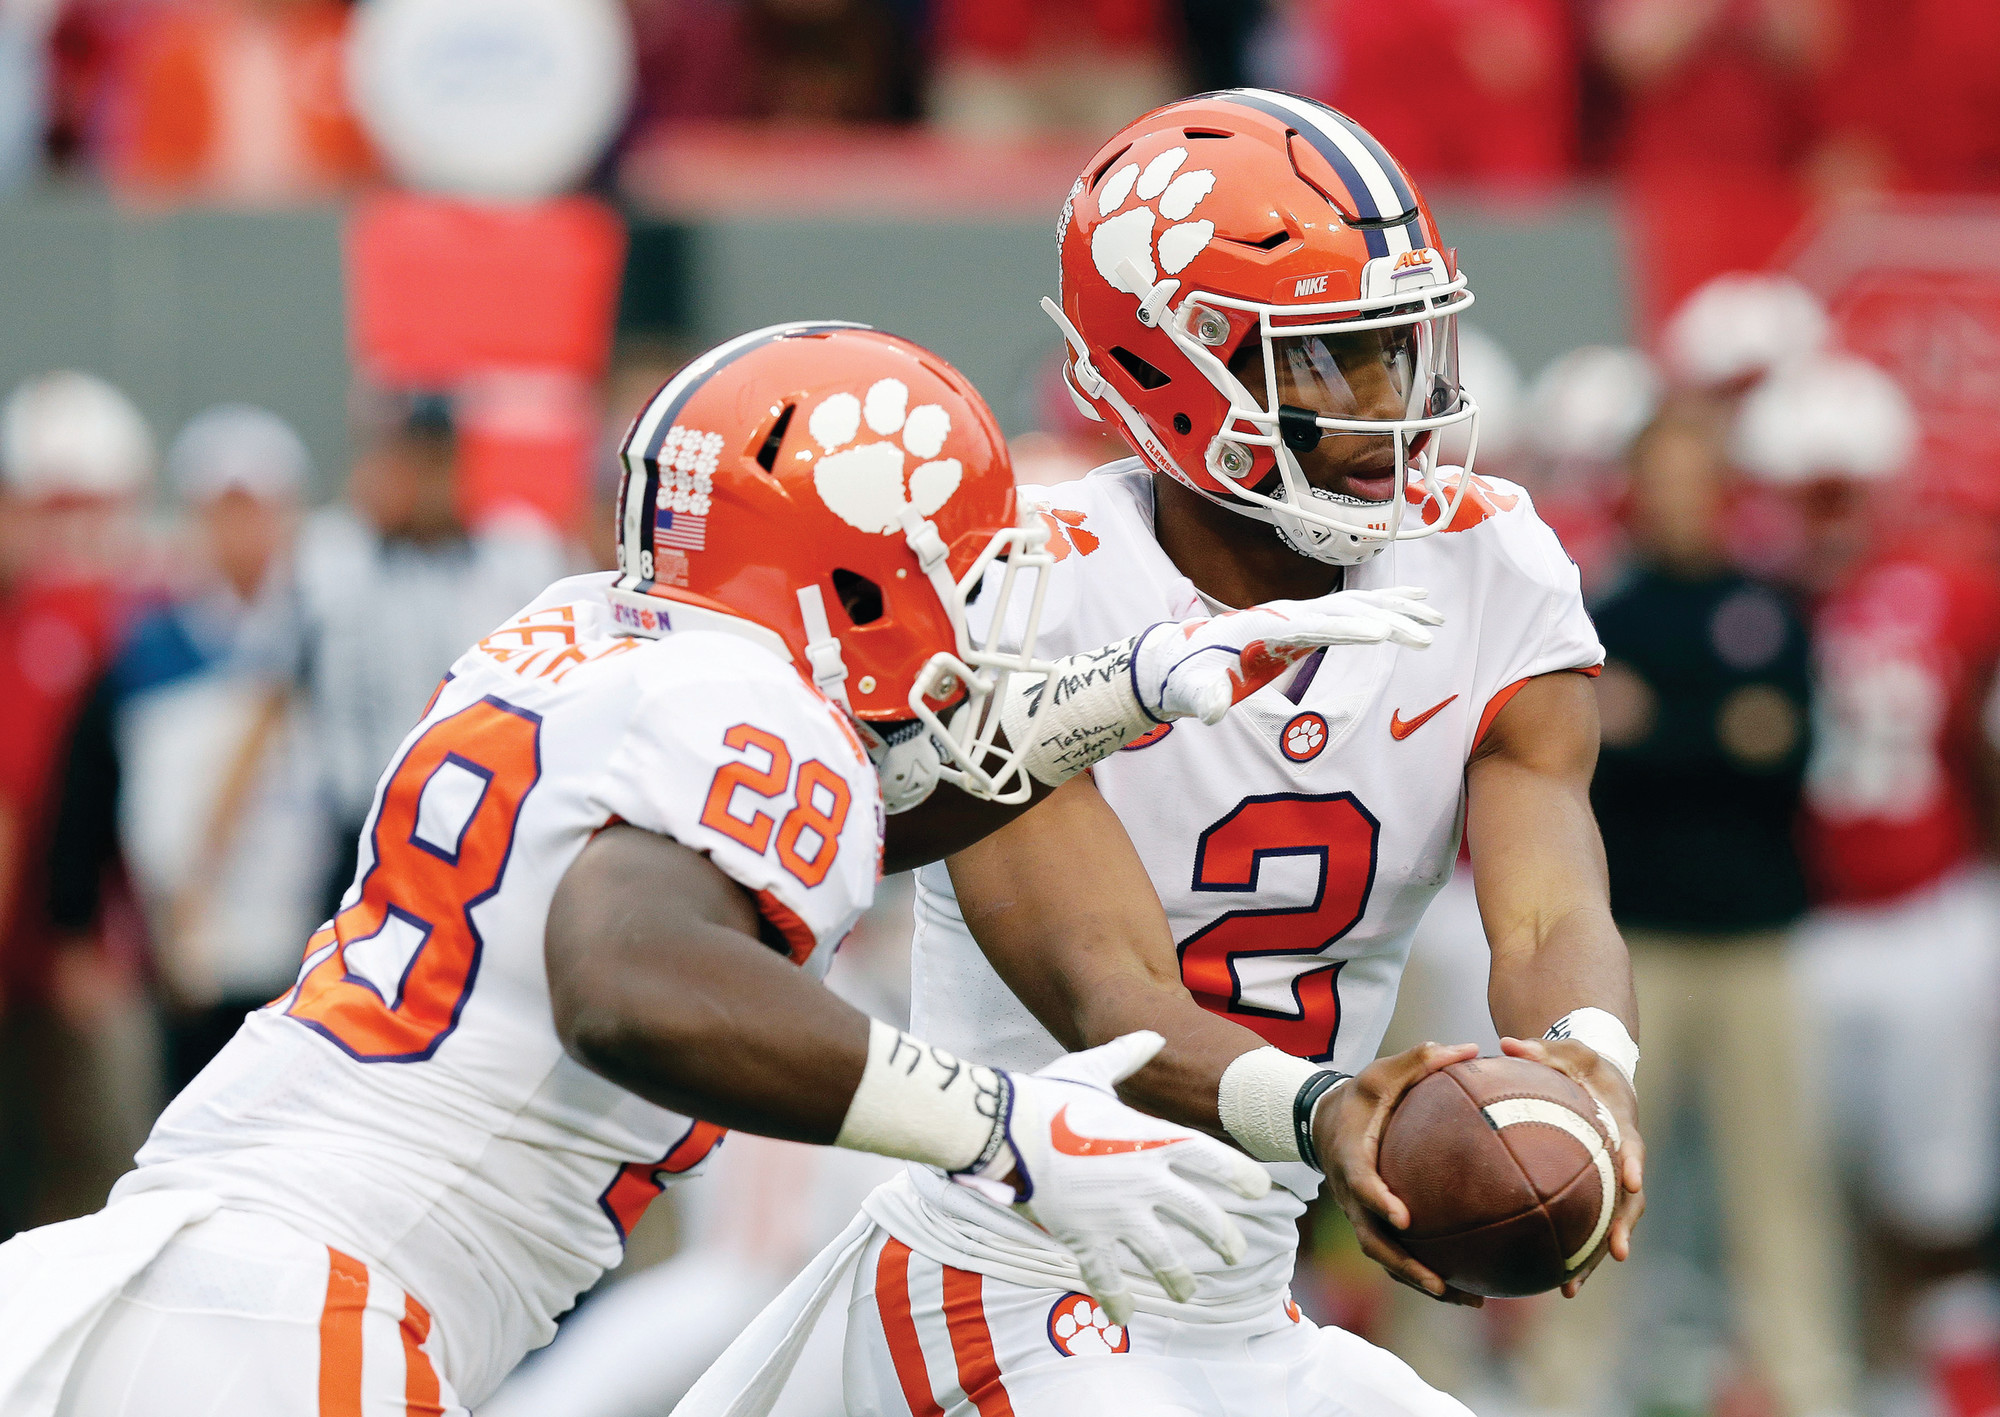 Clemson quarterback Kelly Bryant (2) hands off to Tavien Feaster (28) during the first half of their 2017 game against North Carolina State in Raleigh, N.C.